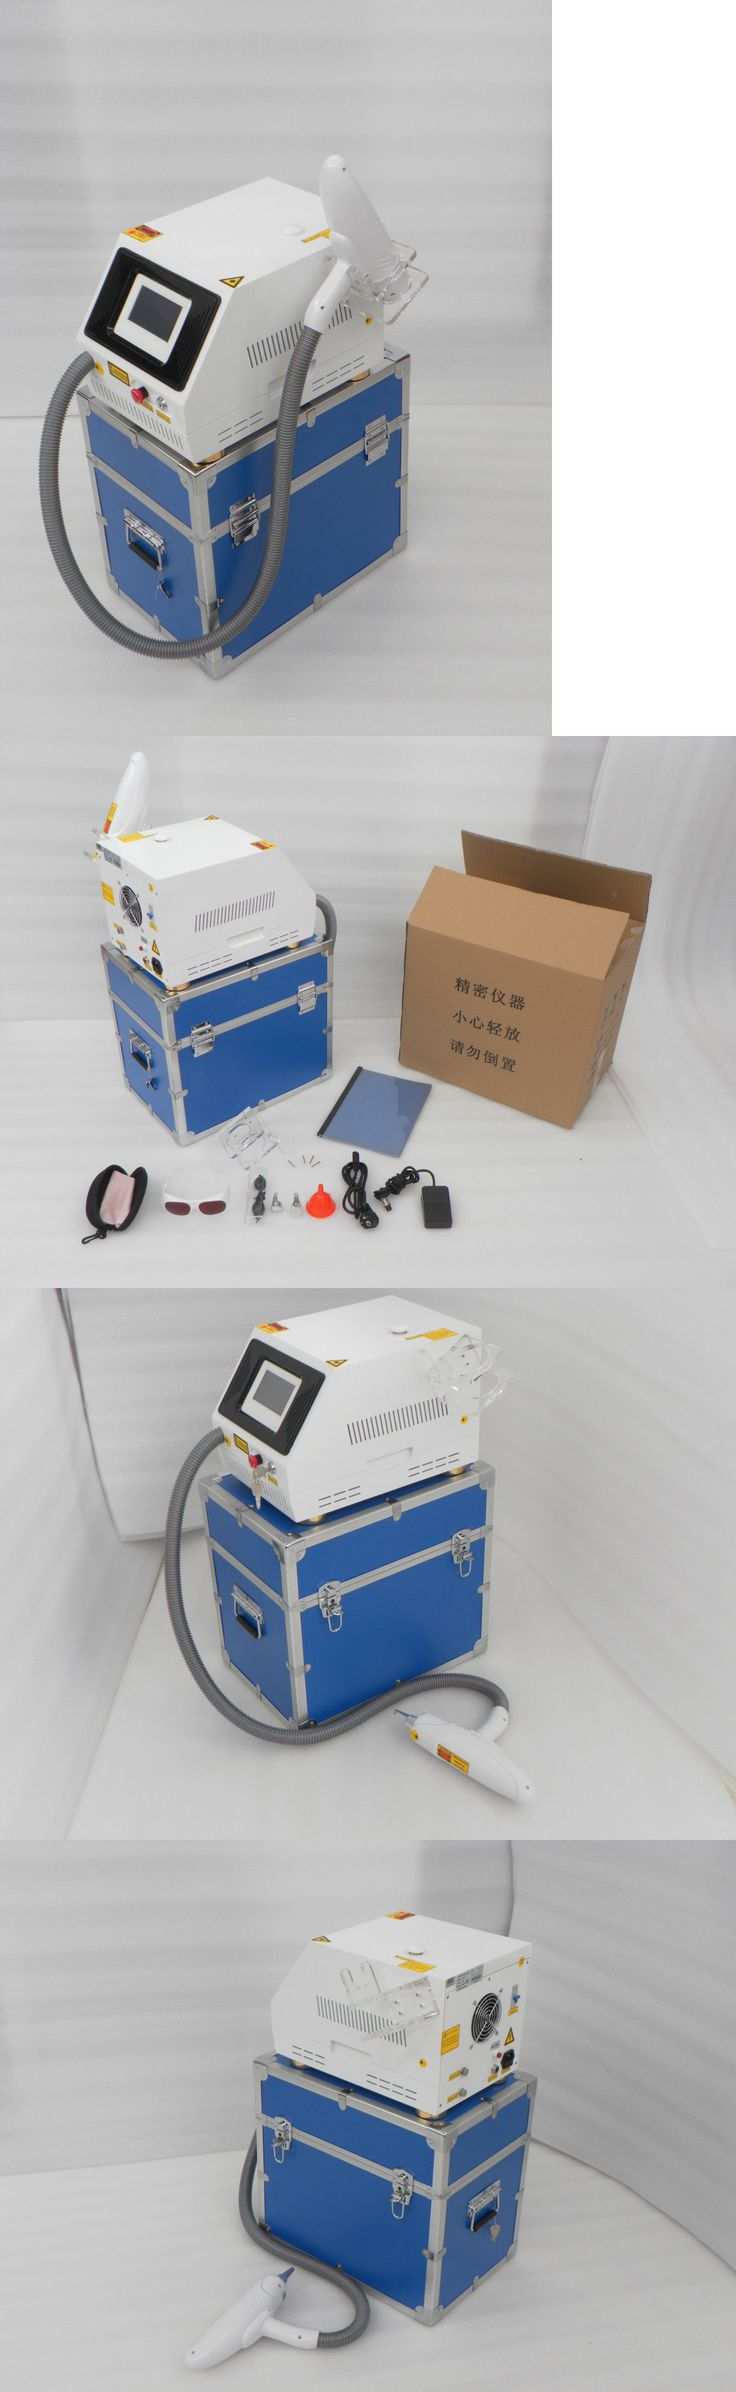 Tattoo Removal Machines: New Pro 1064And532nm Q Switch Yag Laser Tattoo Removal Eyebrow Removal Machine -> BUY IT NOW ONLY: $989 on eBay!